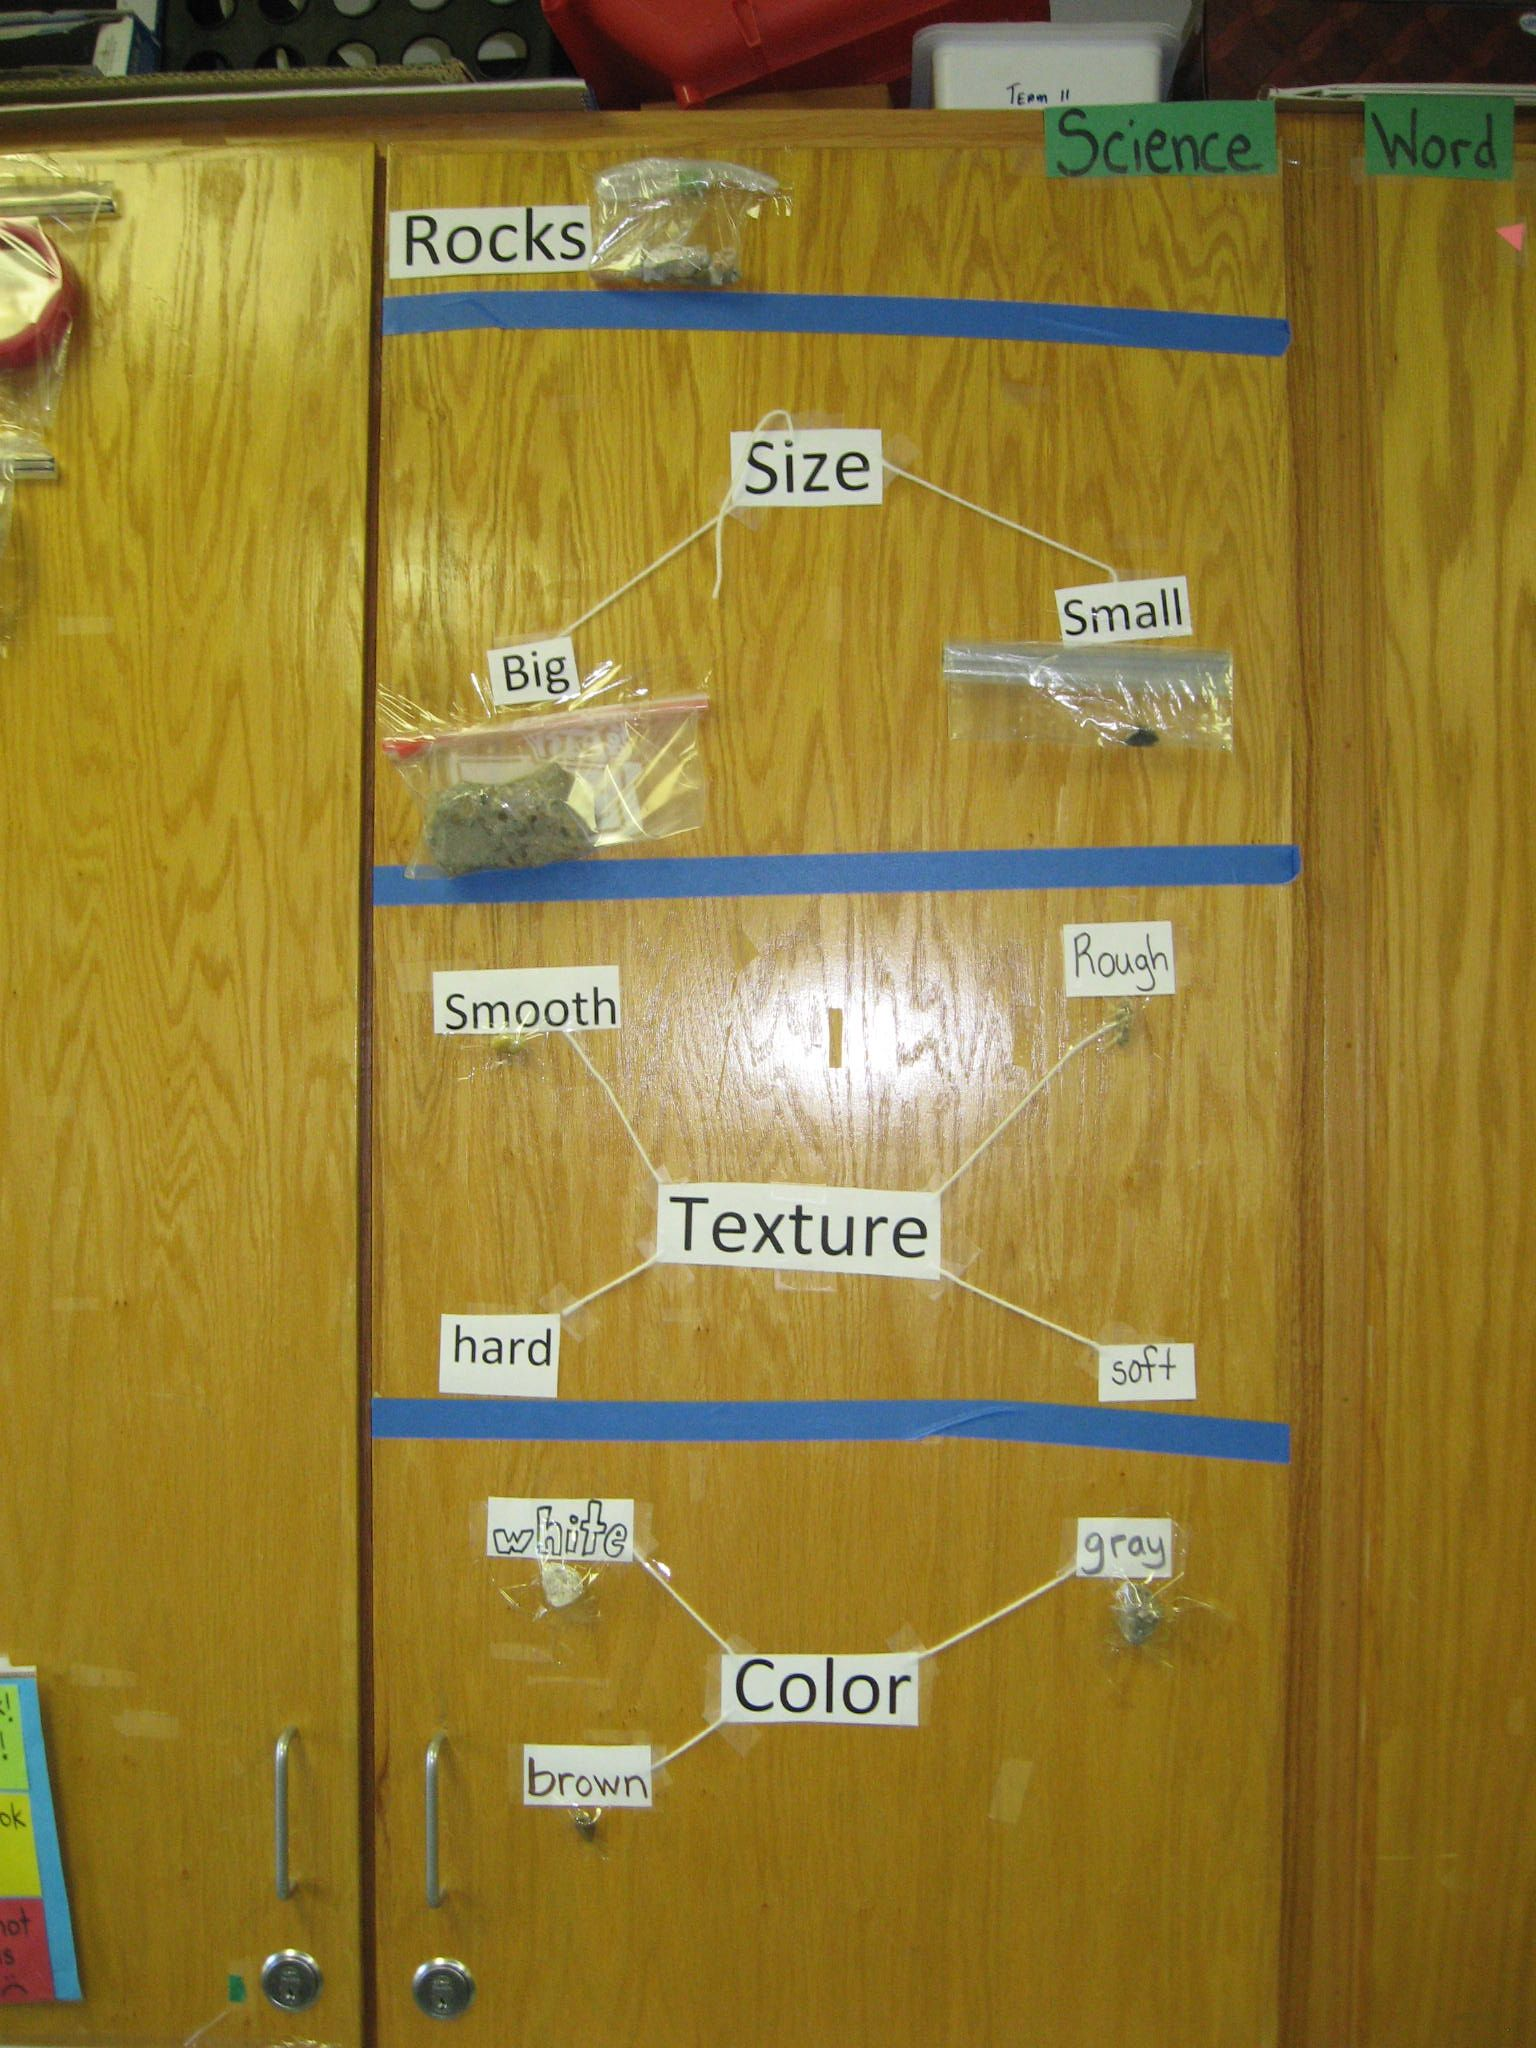 Science TEKS 2.7A Rocks - size, color and texture